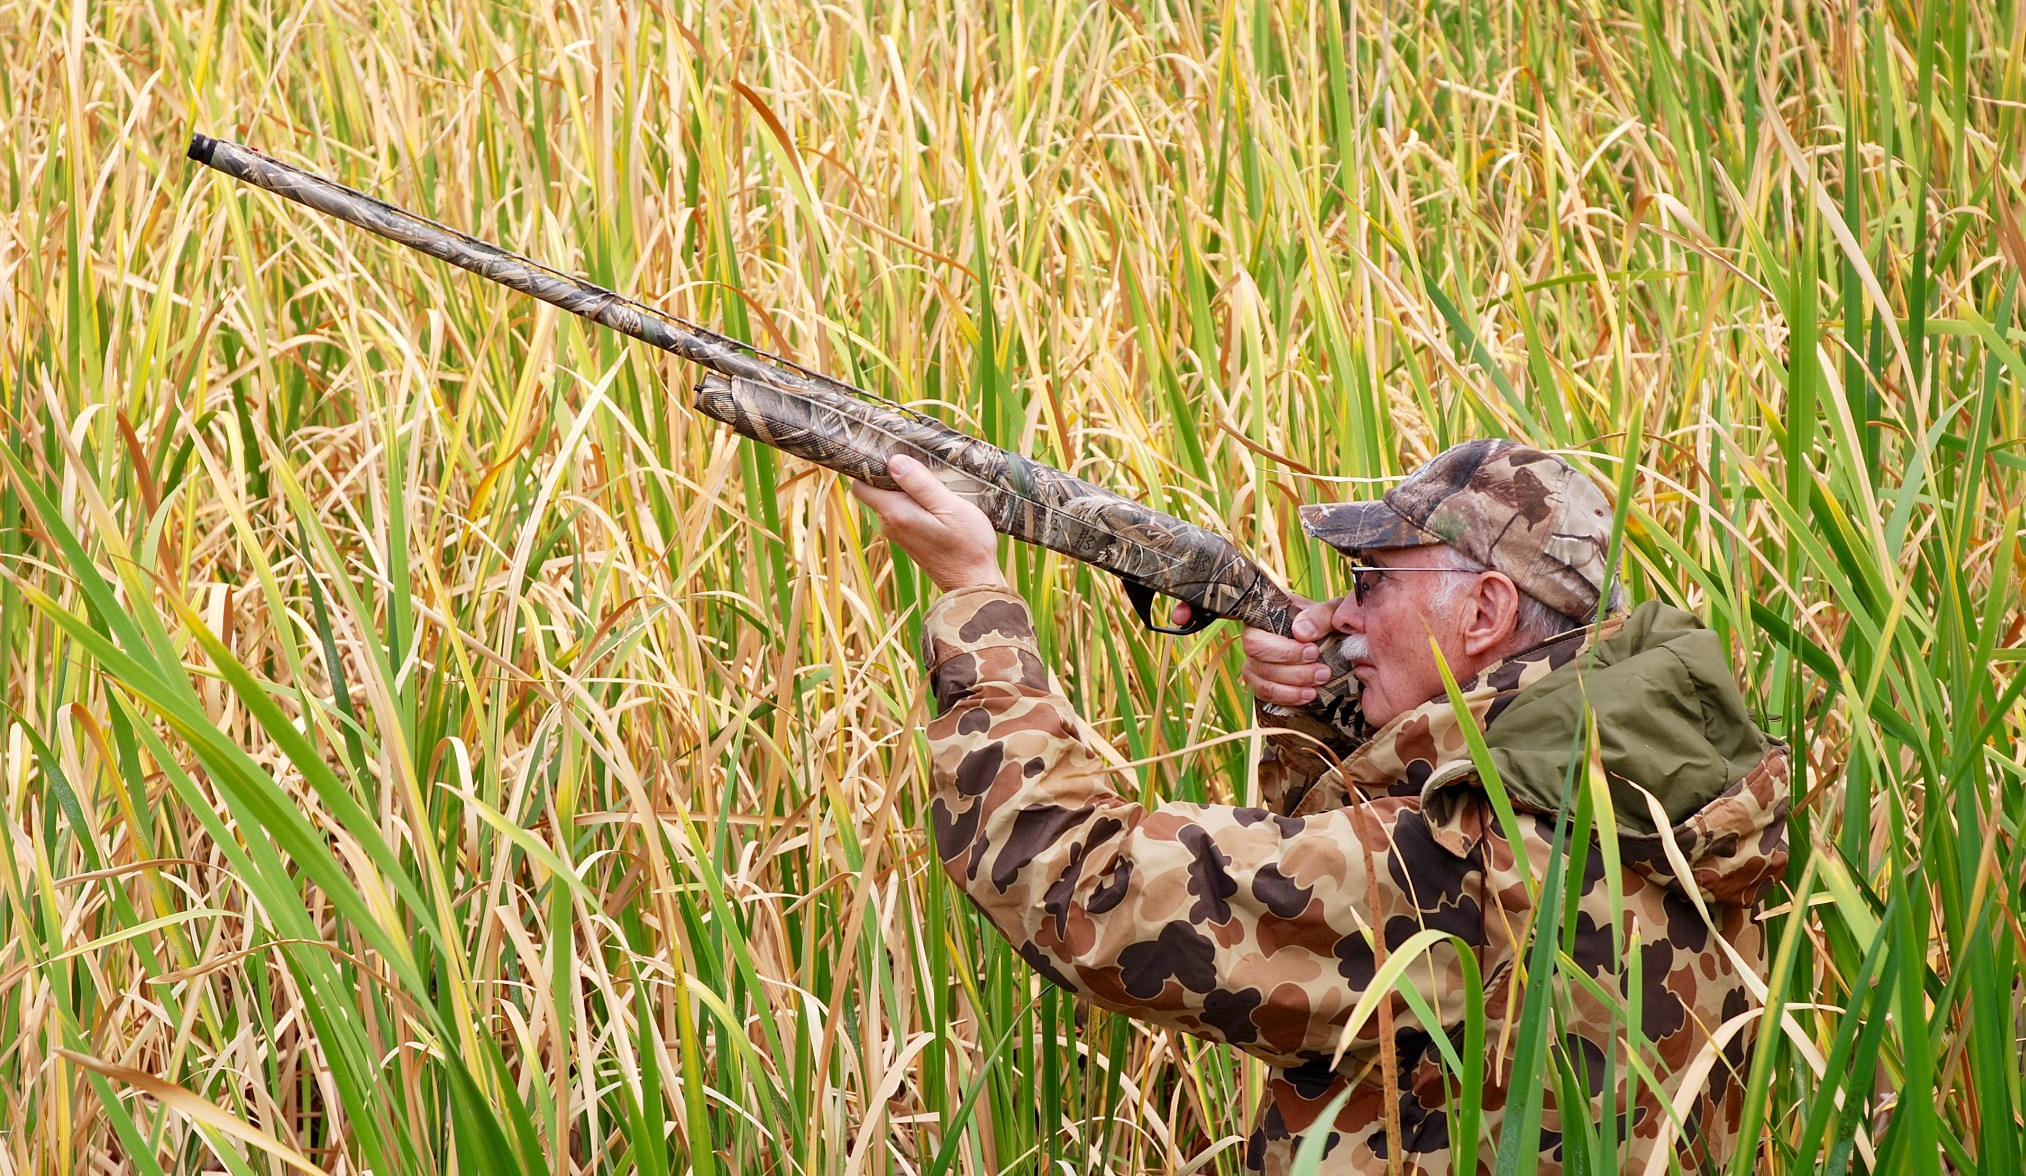 Gun review: We test Benelli's redesigned Super Black Eagle 3